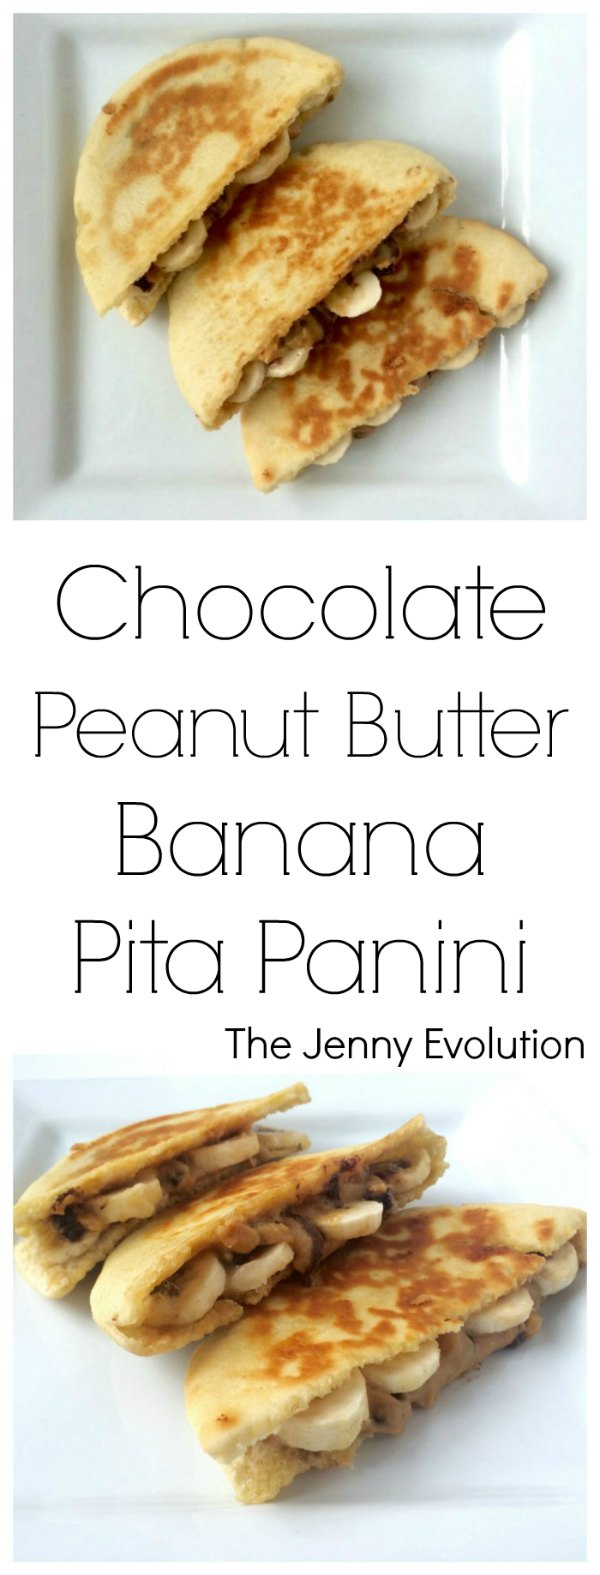 Chocolate Peanut Butter Banana Pita Panini Recipe